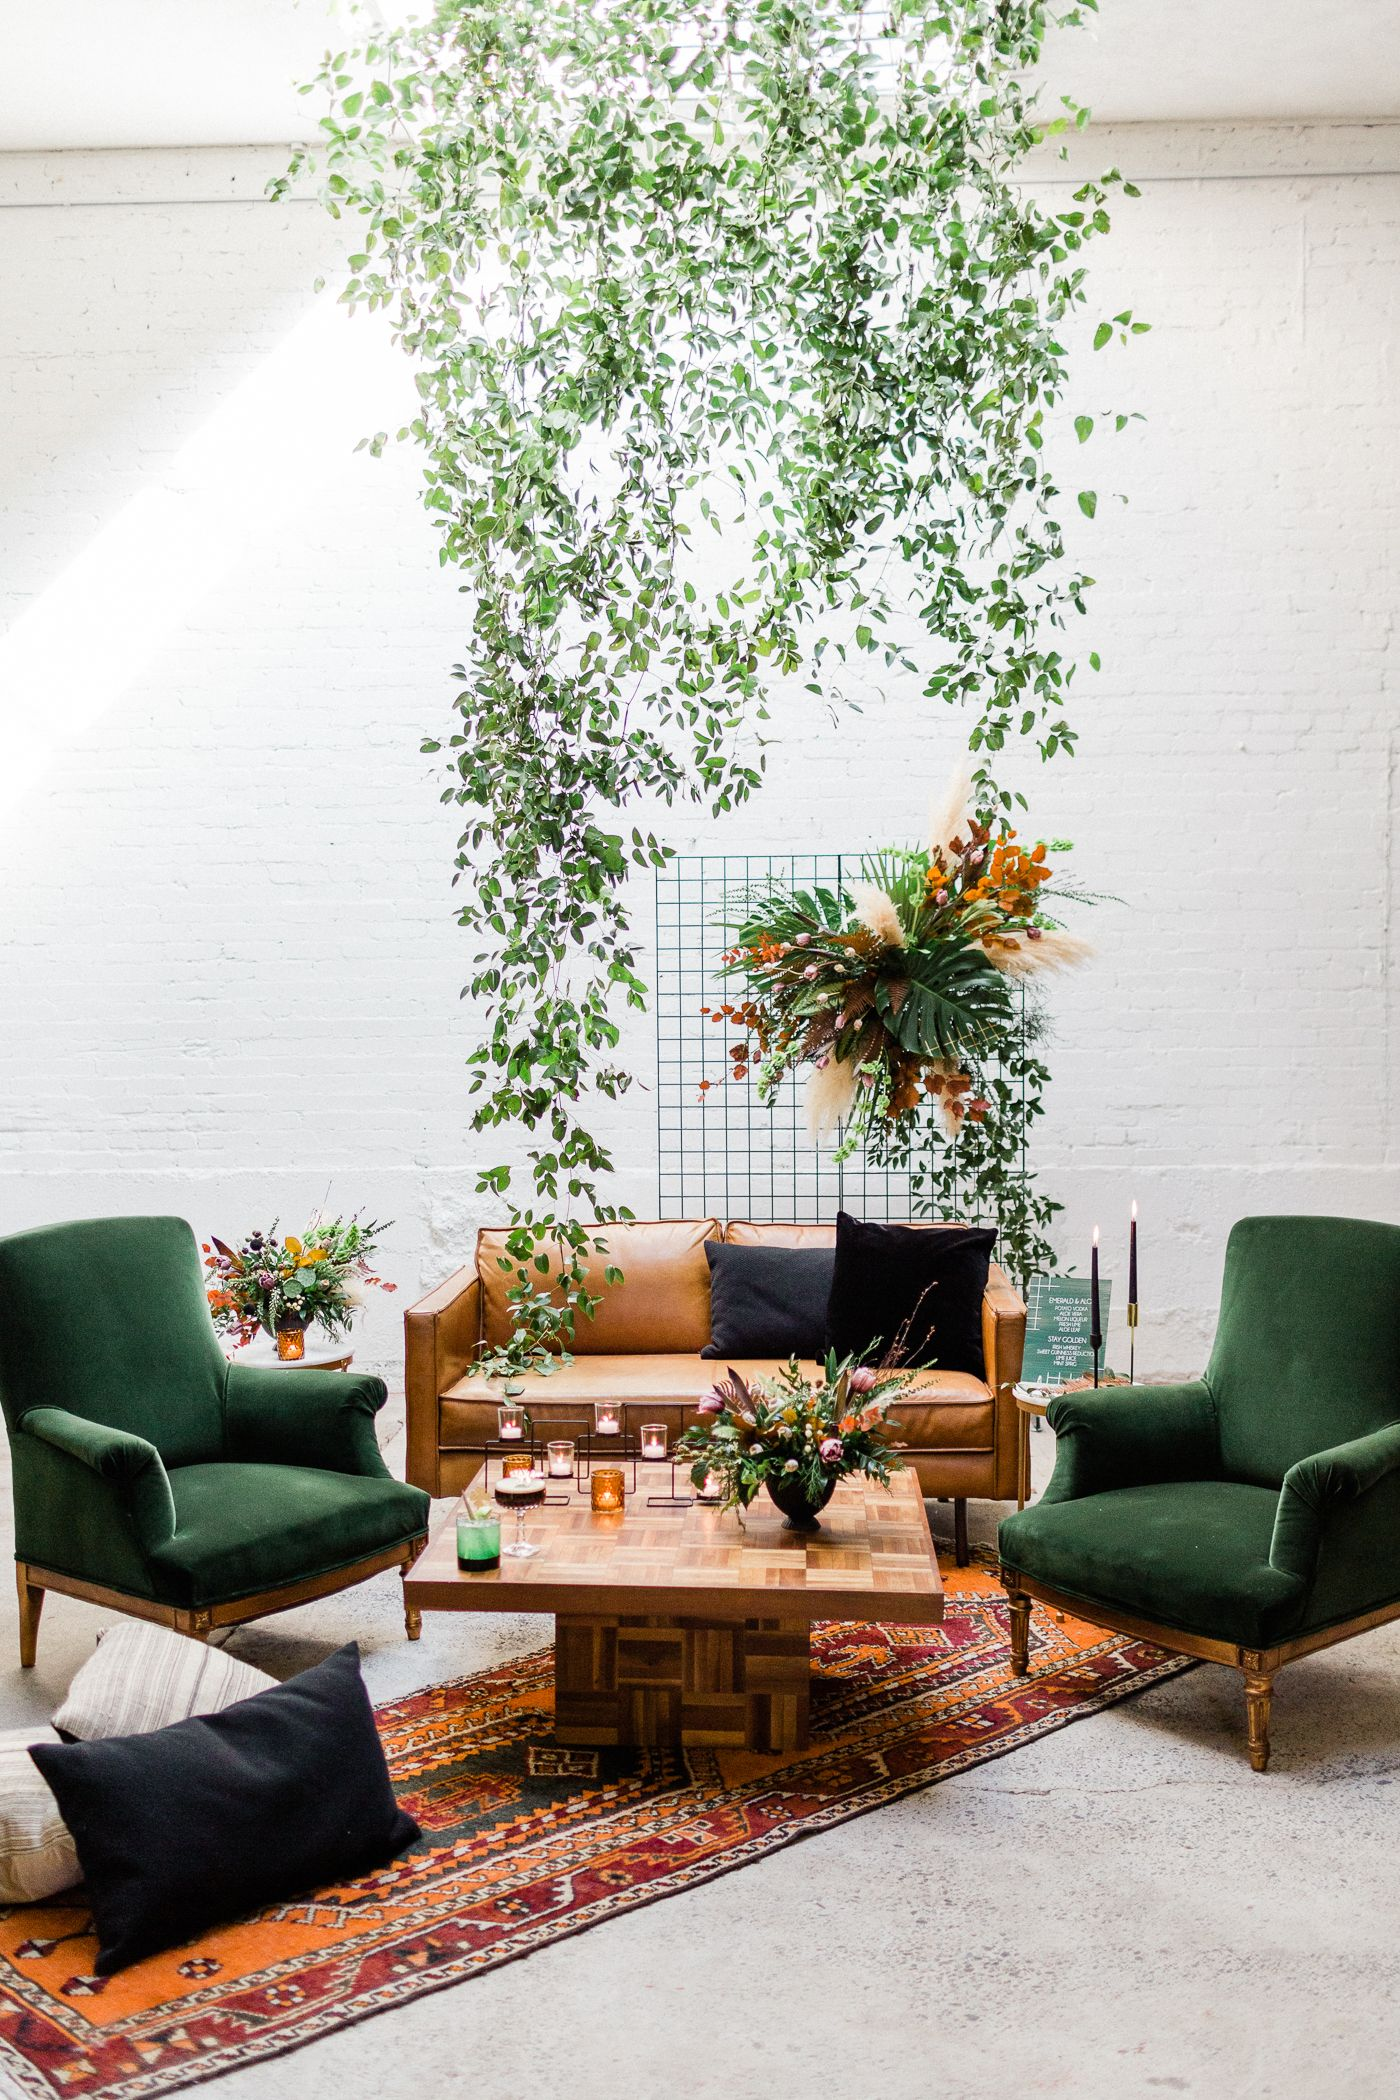 Event lounge inspiration with green velvet chairs, leather